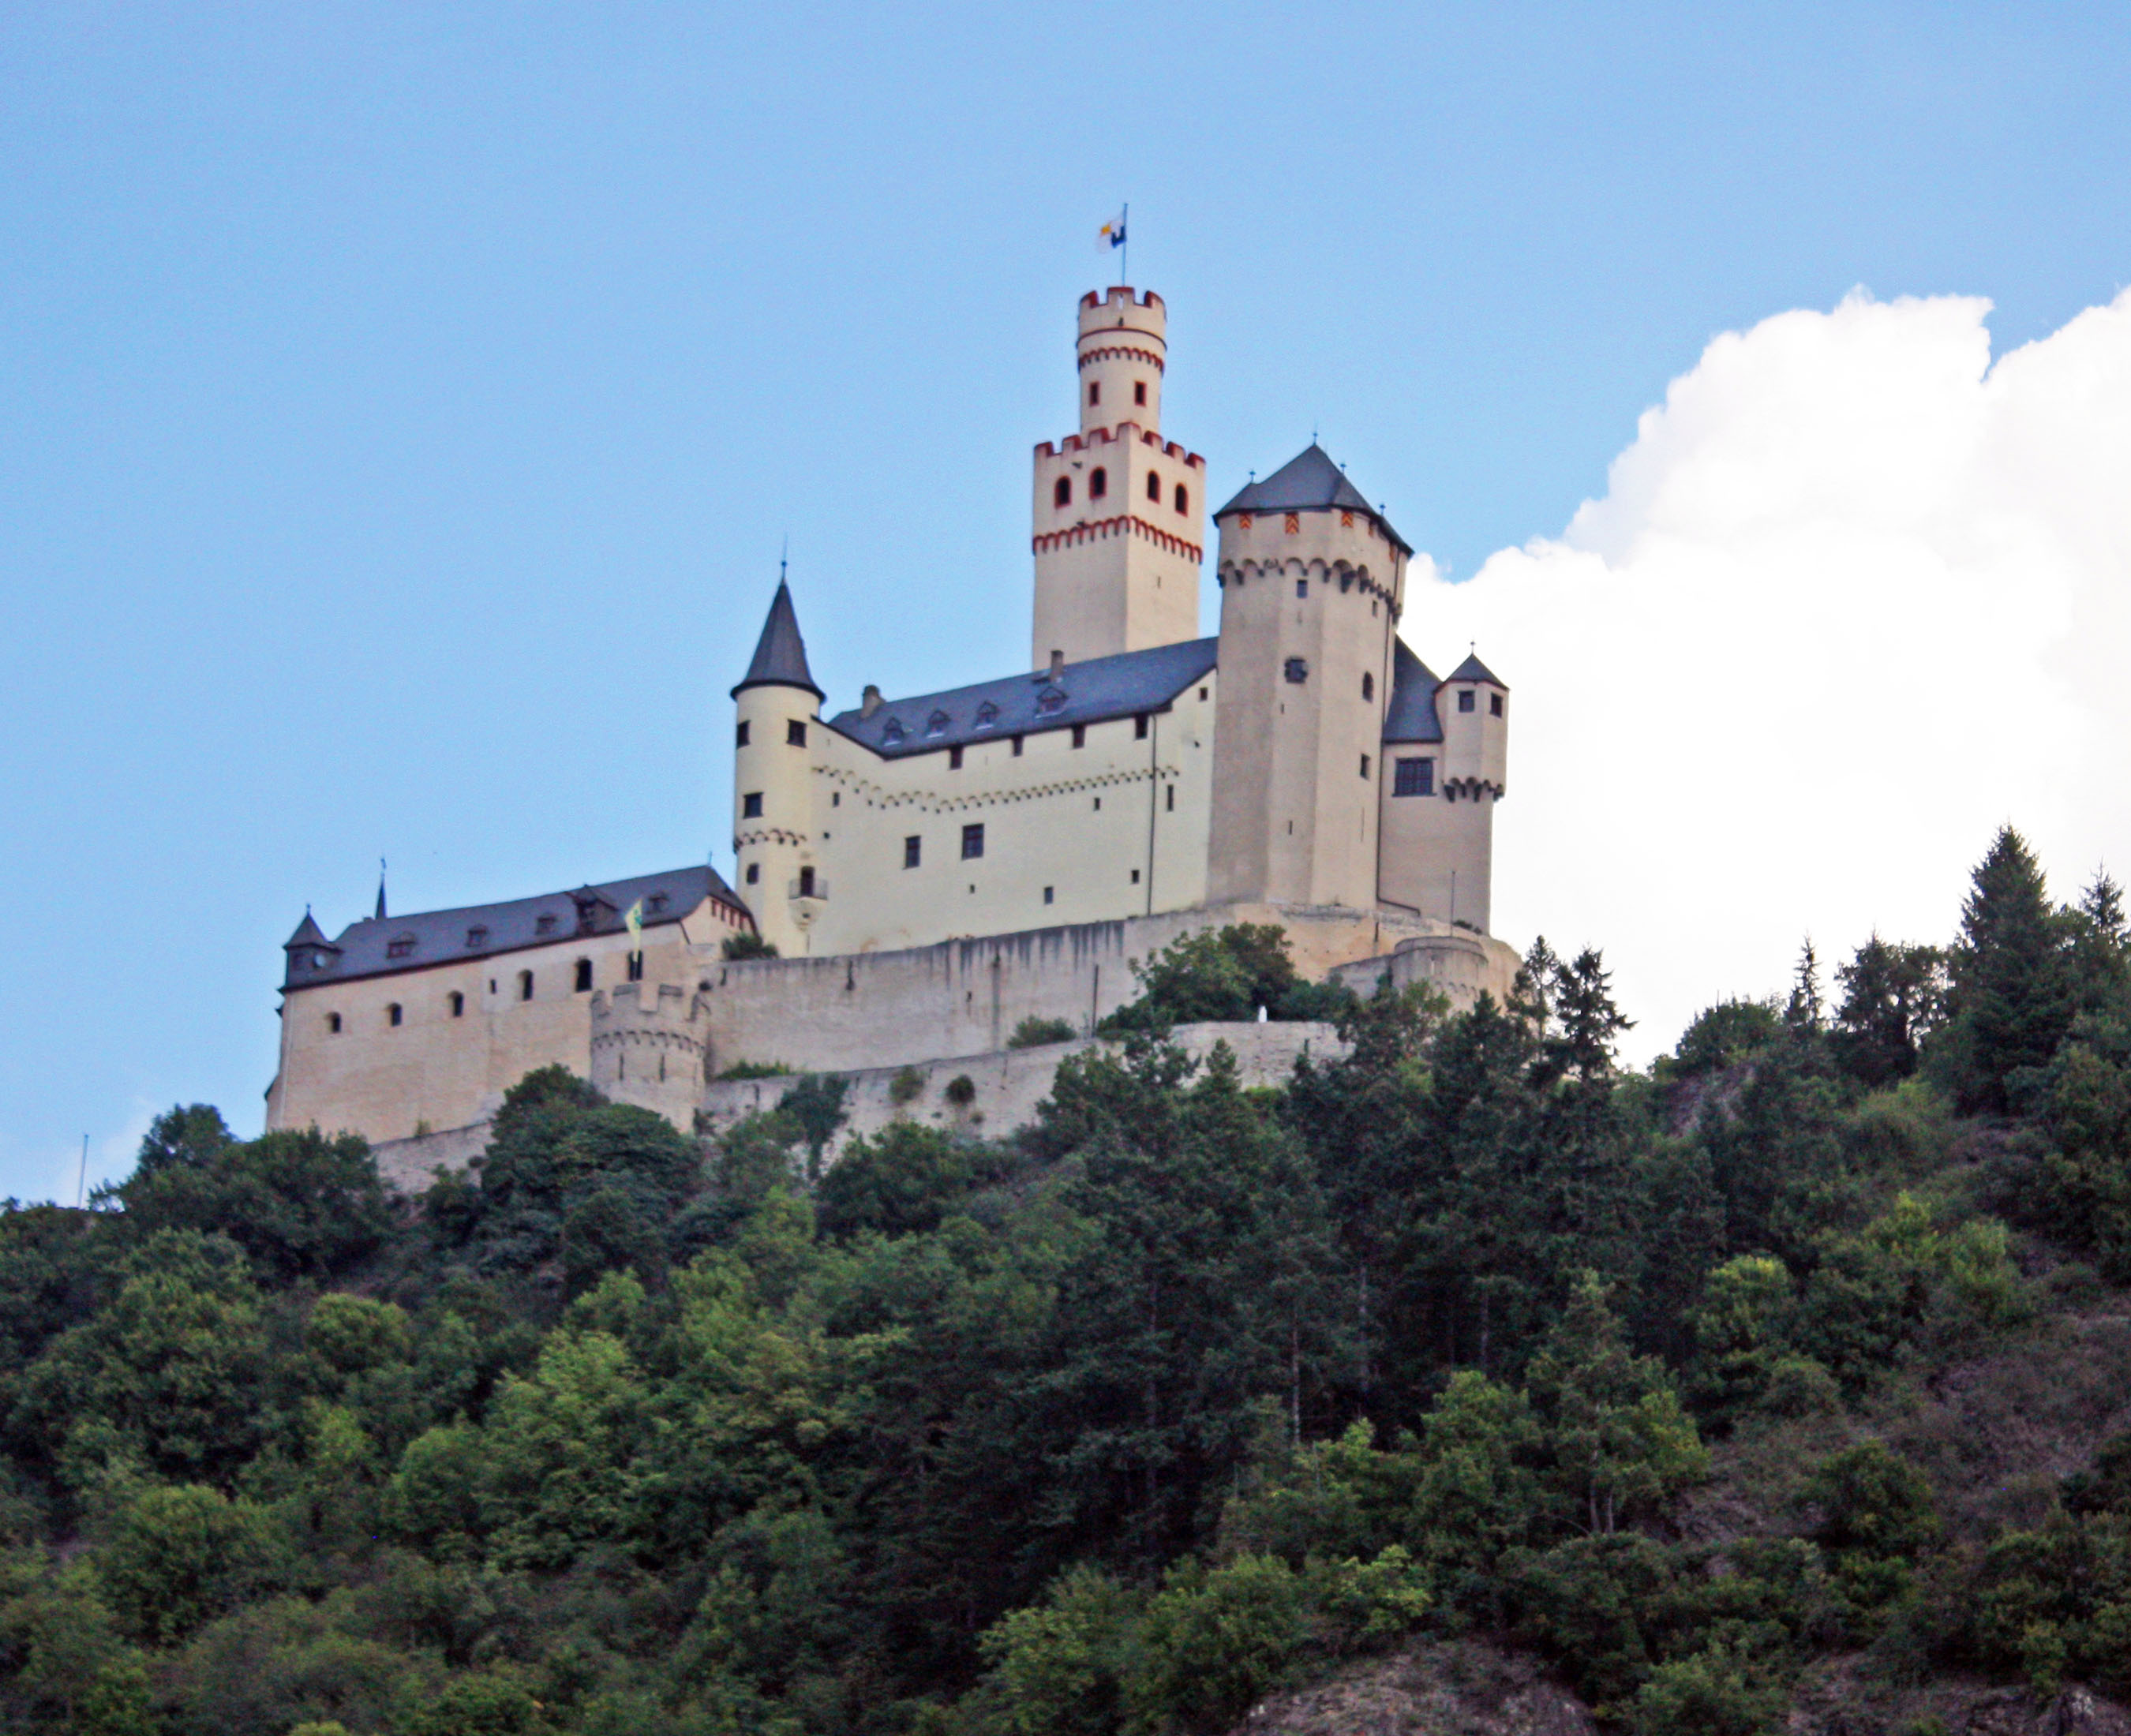 A view of Marksburg Castle from the Rhine River.